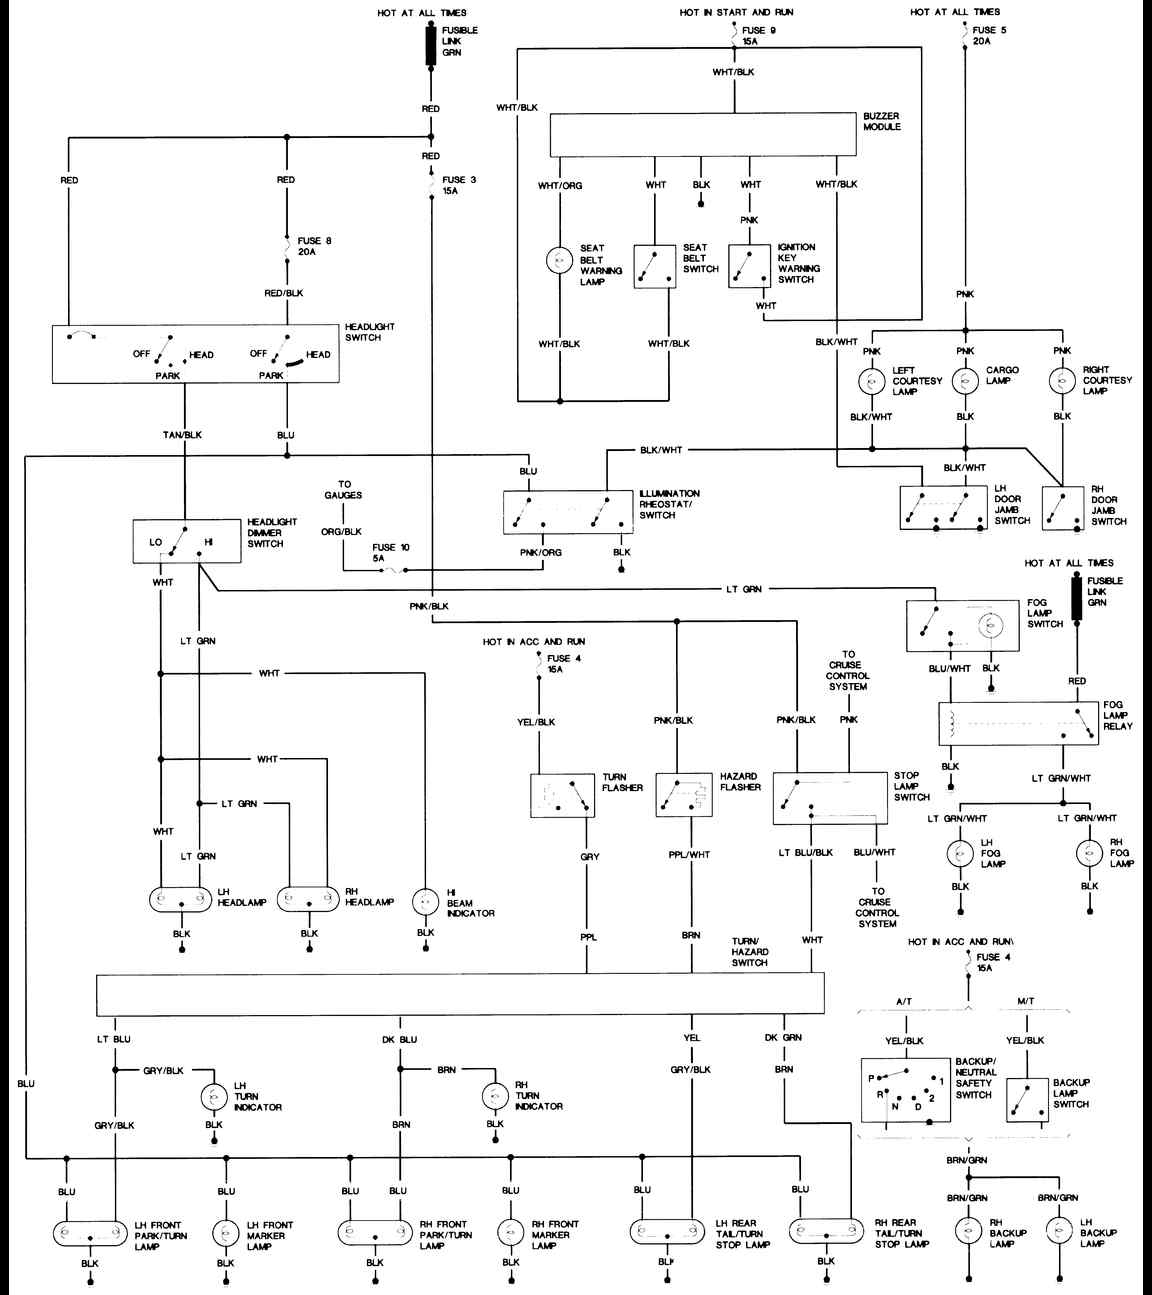 1988 jeep wrangler body 2 yj wiring help! jeep yj dimmer switch wiring diagram at edmiracle.co